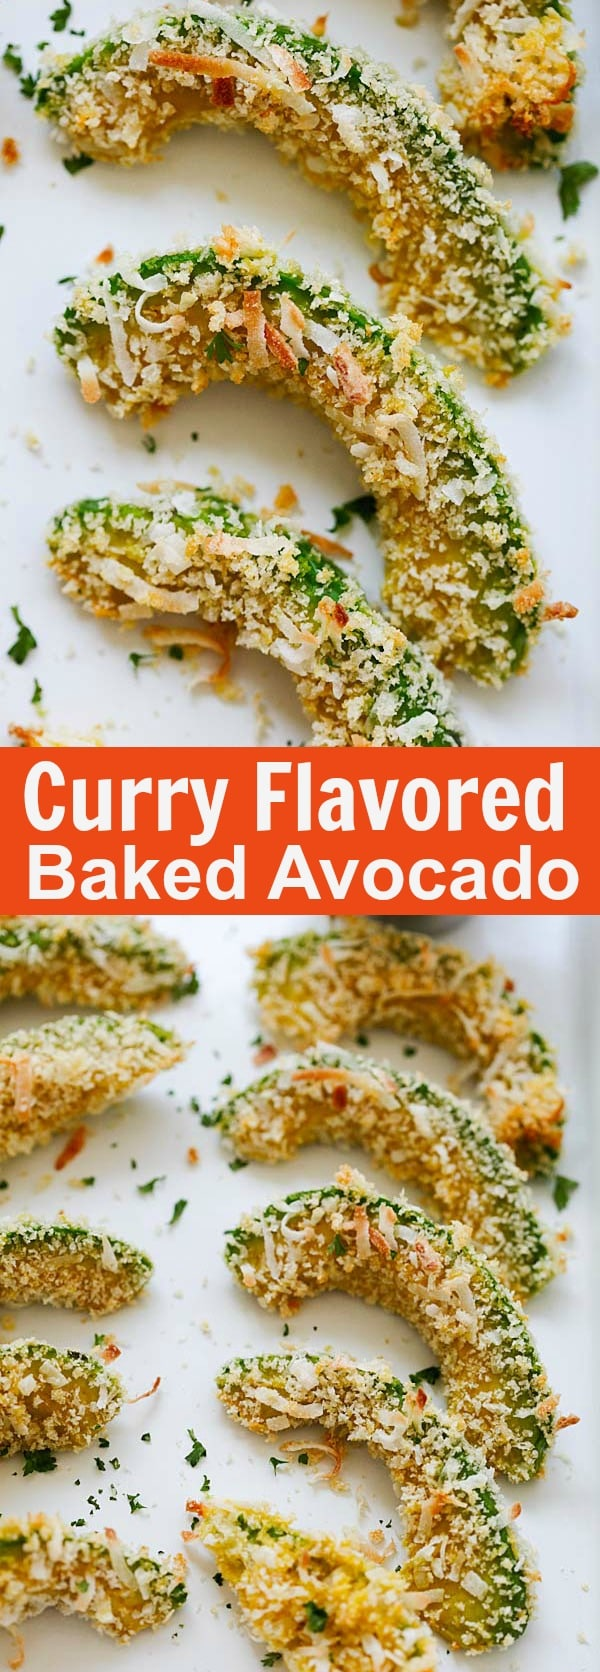 Curry-Flavored Baked Avocado - spice up baked avocado with curry powder. These avocados are so good, healthy and takes only 20 minutes to make | rasamalaysia.com